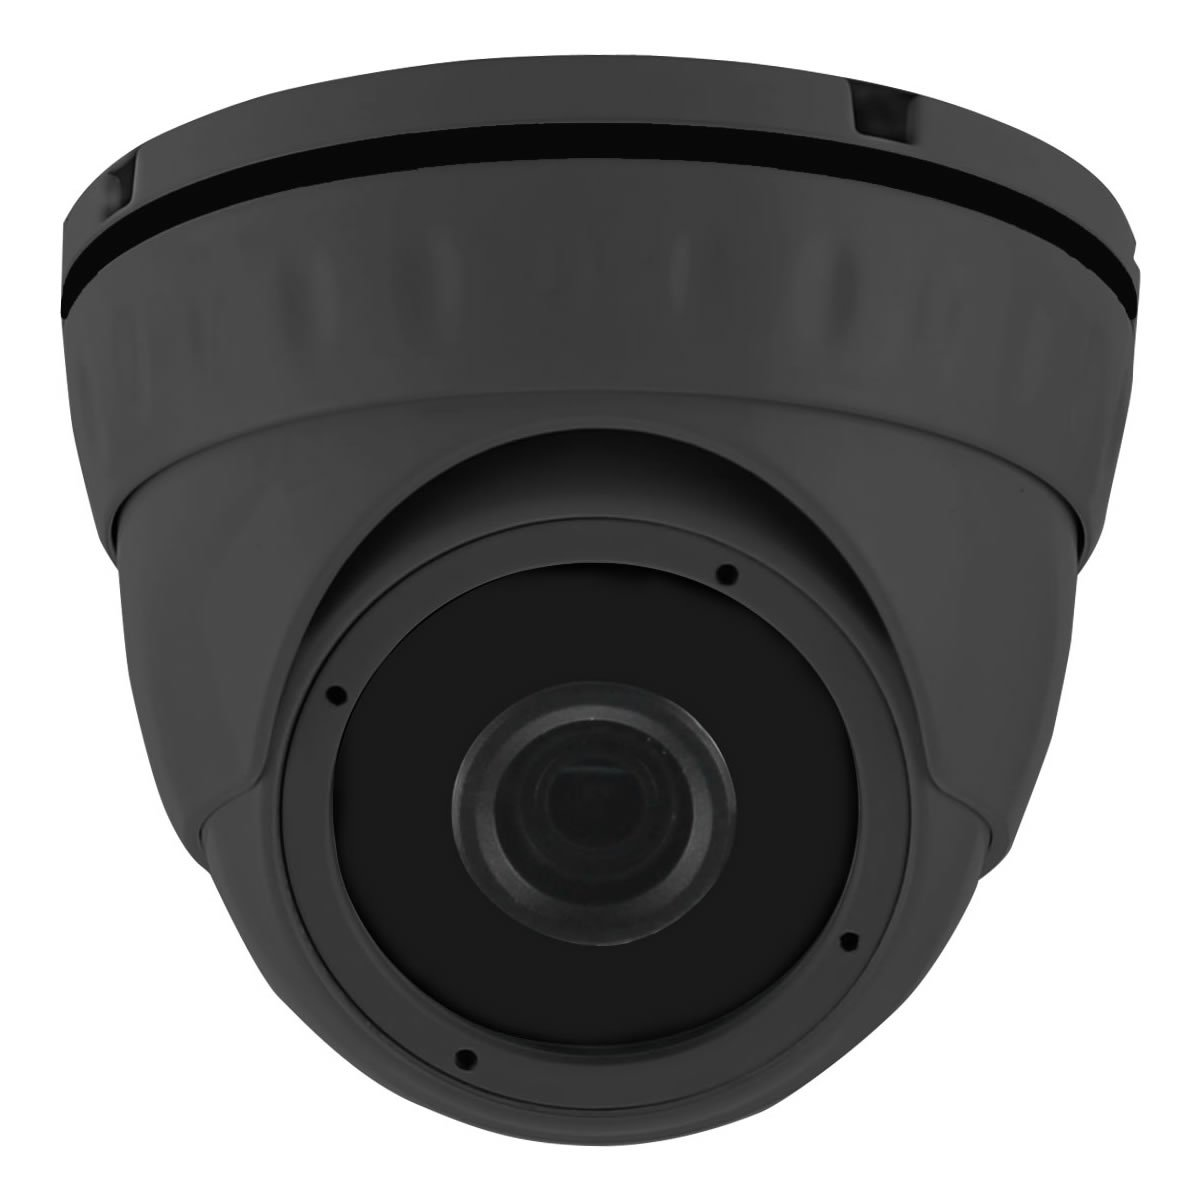 HDView 2.4MP 4-in-1 HD (TVI/AHD/CVI/960H) 1080P Outdoor SONY Sensor Wide Angle 2.8mm Lens Black Film Technology Better IR Night Vision Turbo Platinum Dome Camera Grey by HDView